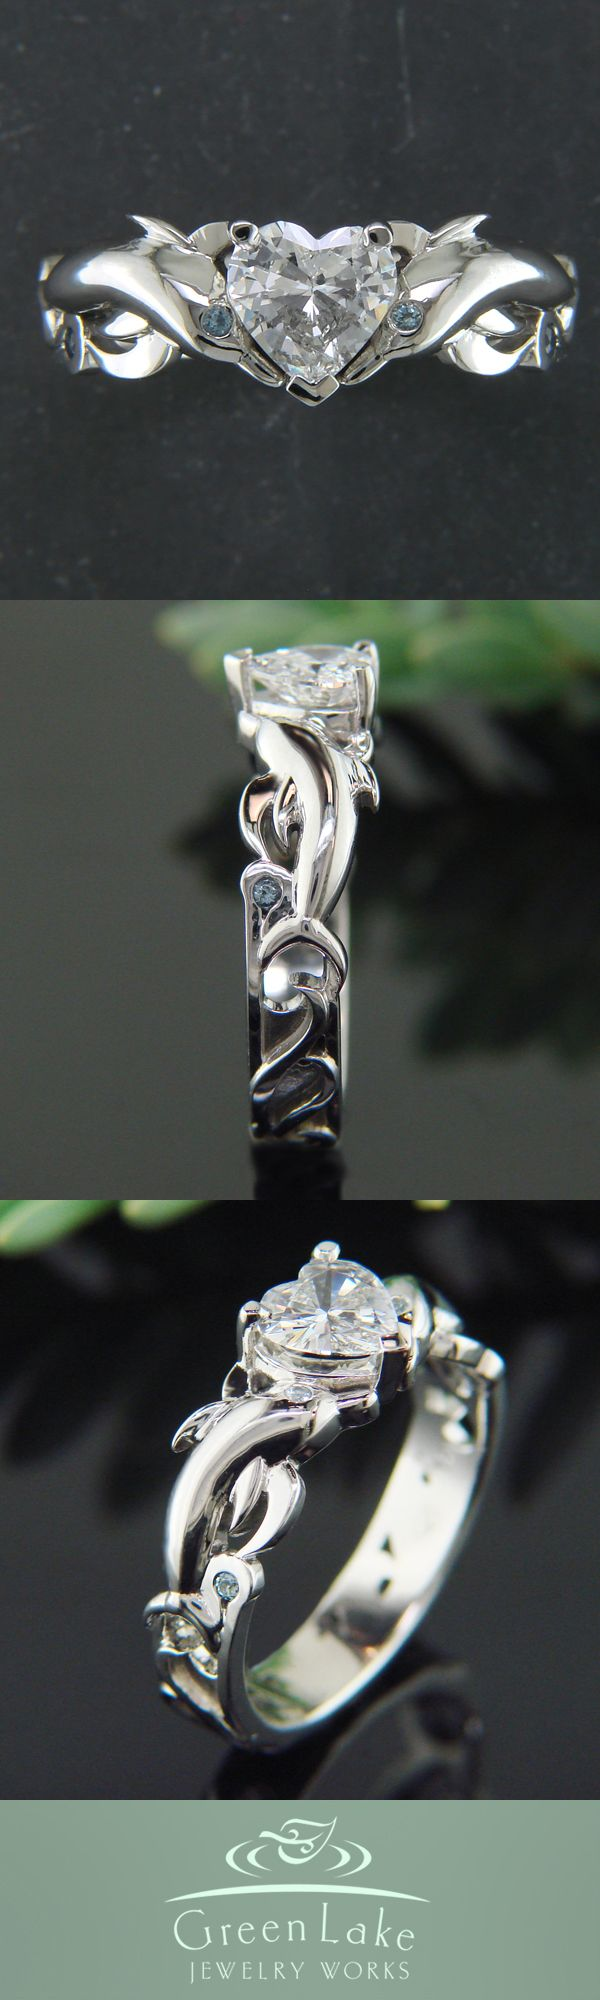 dolphin rings dolphin wedding rings Engagement Ring Custom dolphin ring in white gold with a stunning heart shaped center diamond